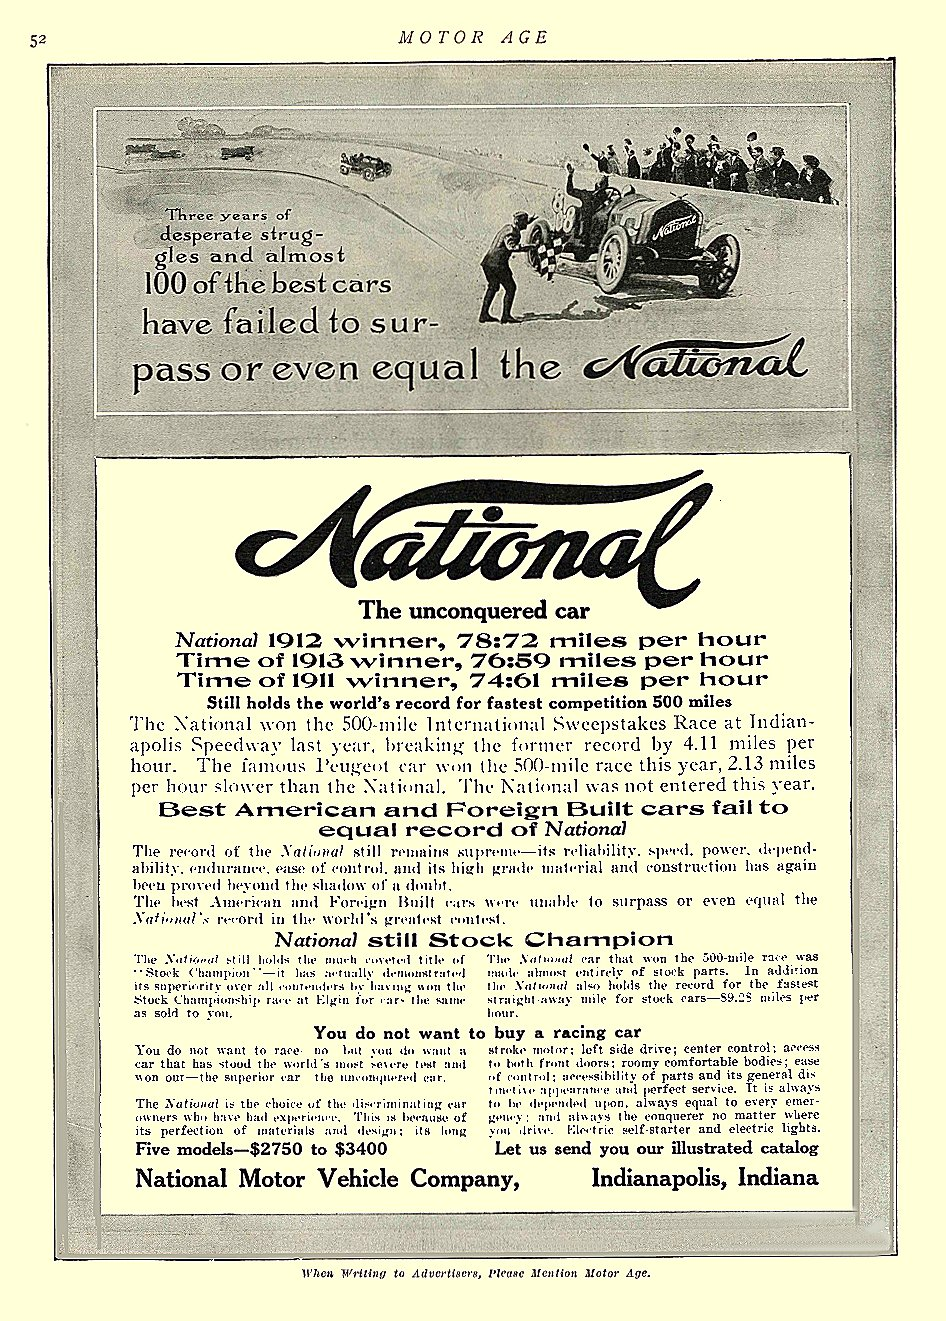 1913 6 5 NATIONAL The unconquered car National Motor Vehicle Co. Indianapolis, Indiana MOTOR AGE June 5, 1913 8.5″x11.5″ University of Minnesota Library page 52